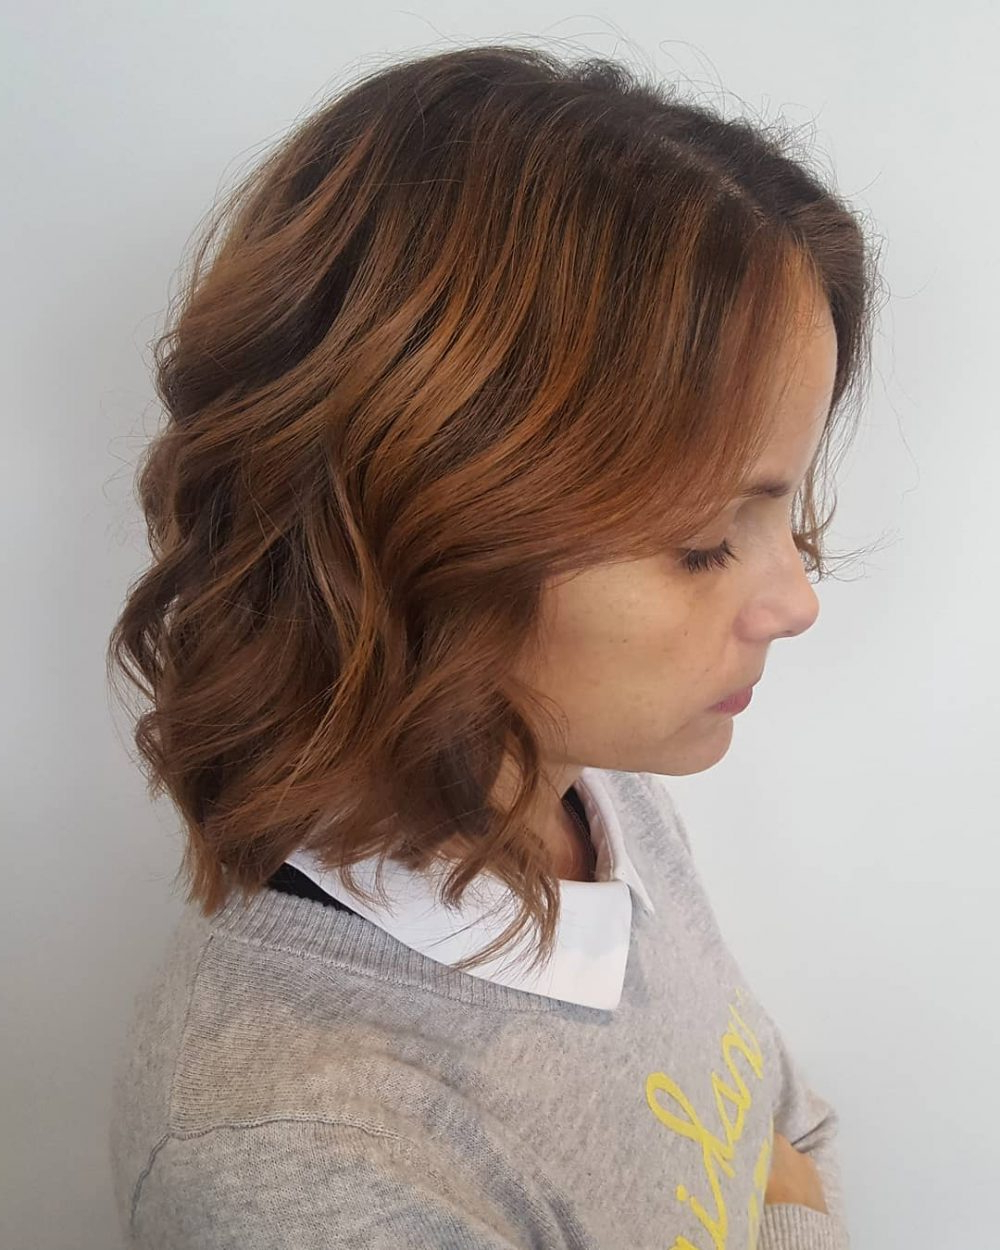 43 Greatest Wavy Bob Hairstyles – Short, Medium And Long In 2018 With Regard To Loosely Waved Messy Brunette Bob Hairstyles (View 8 of 25)